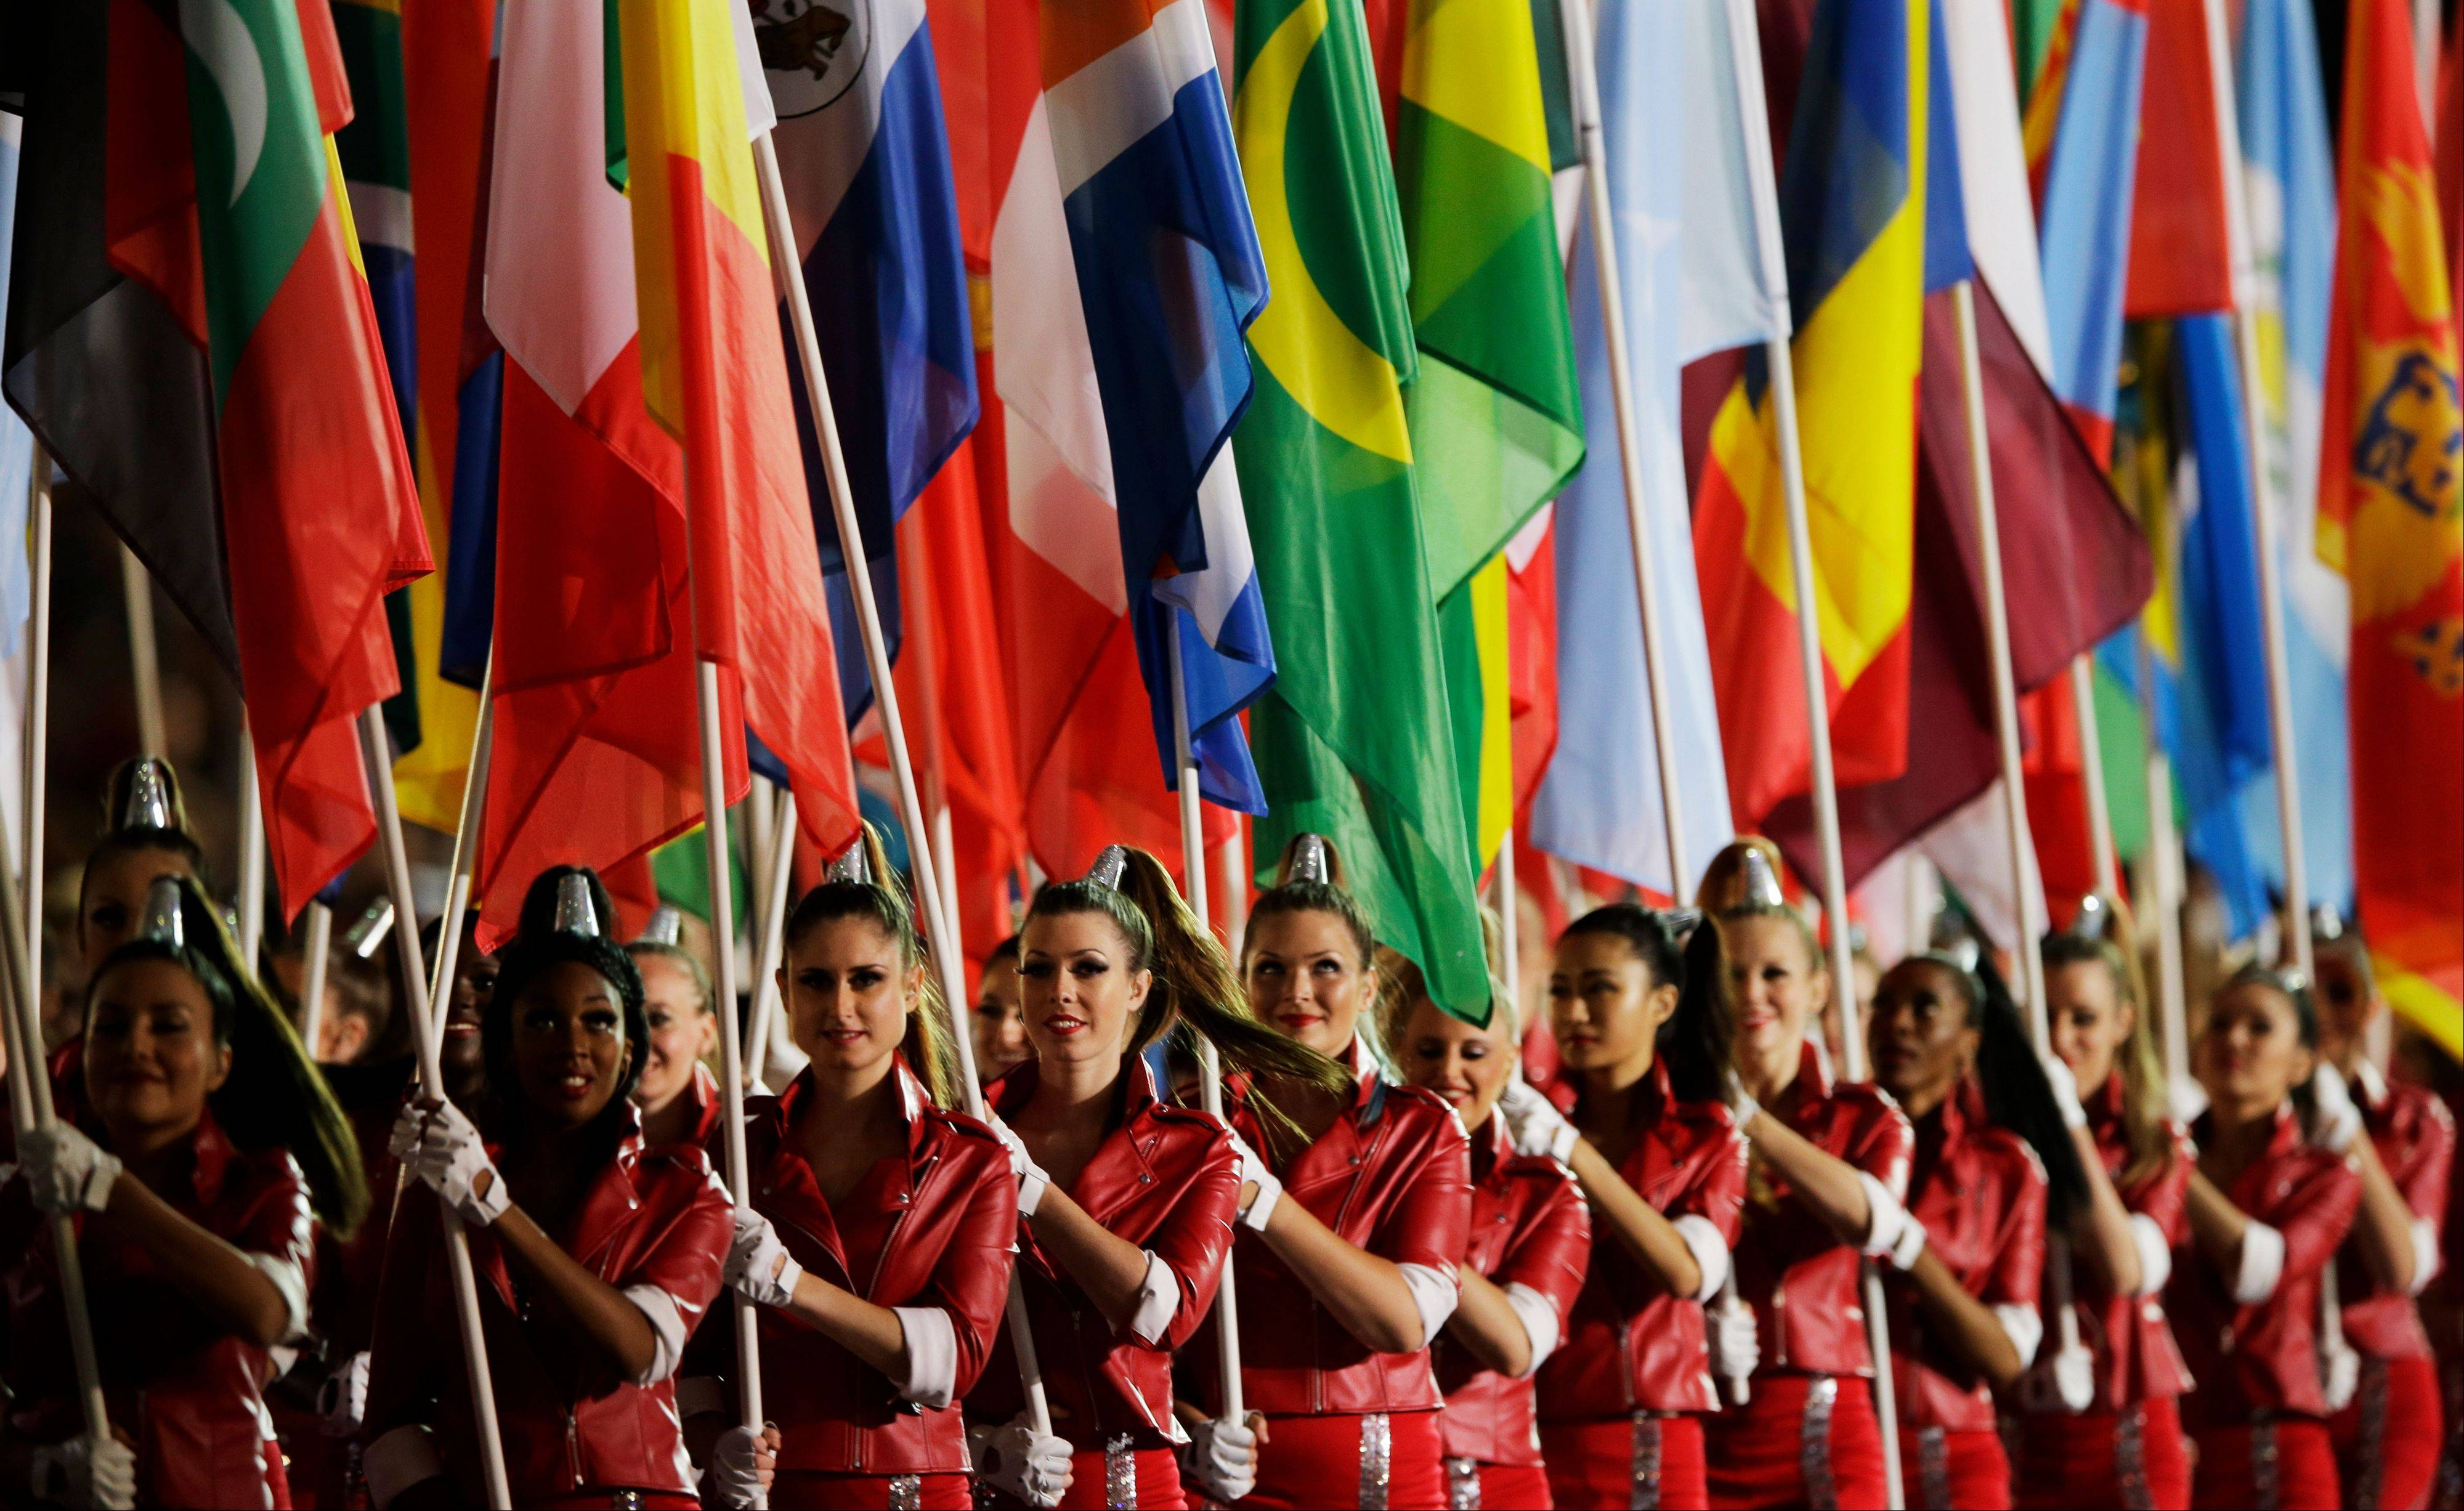 Flag bearers parade during the Closing Ceremony at the 2012 Summer Olympics.